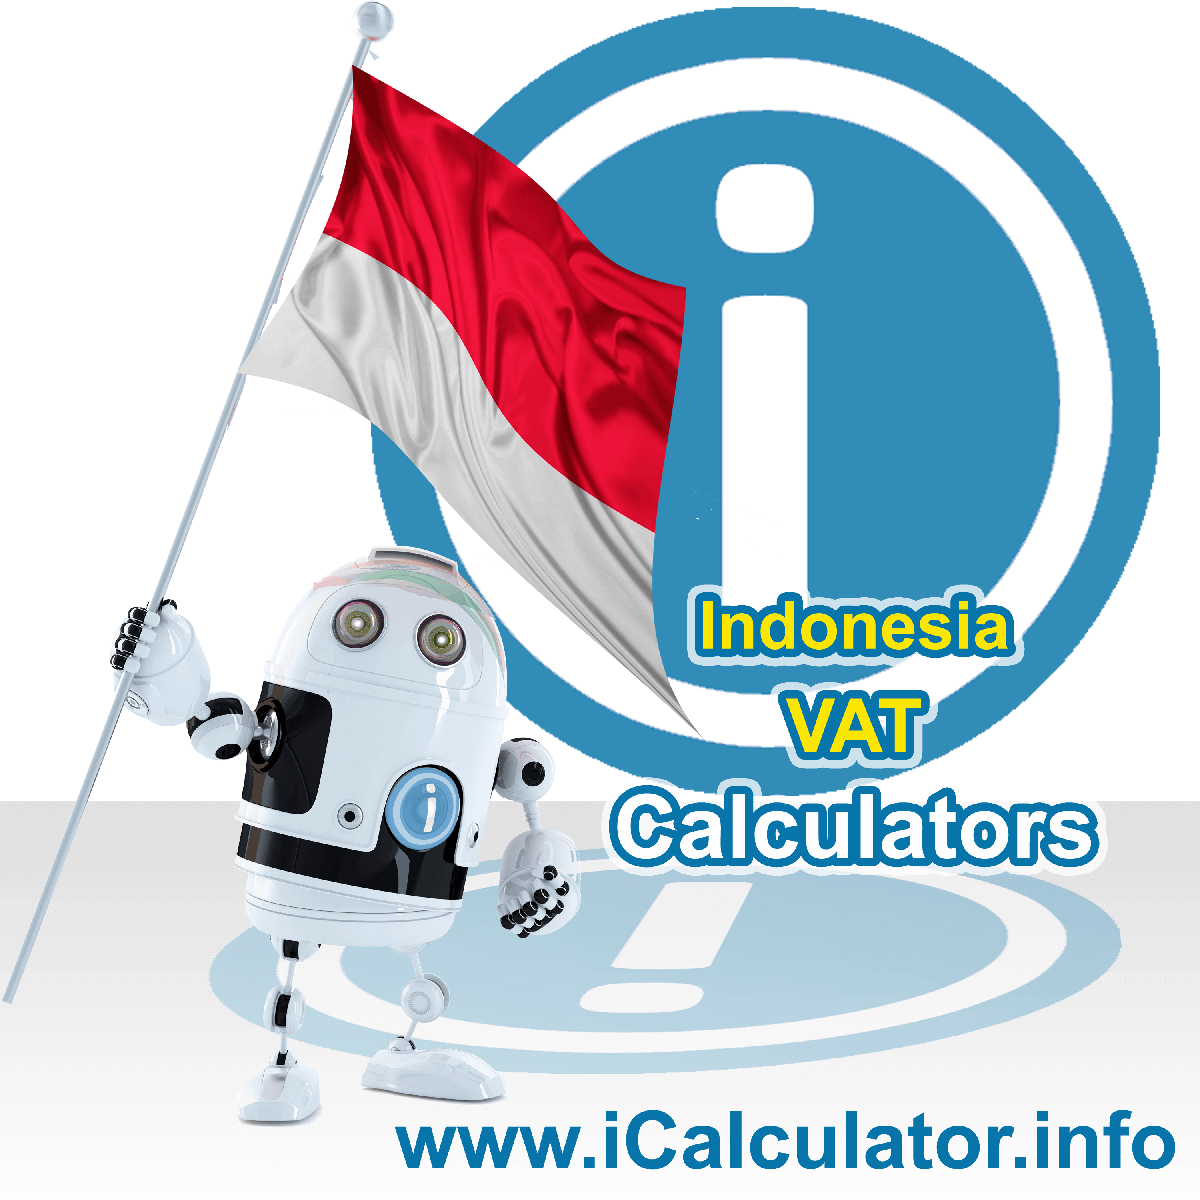 Indonesia VAT Calculator. This image shows the Indonesia flag and information relating to the VAT formula used for calculating Value Added Tax in Indonesia using the Indonesia VAT Calculator in 2020